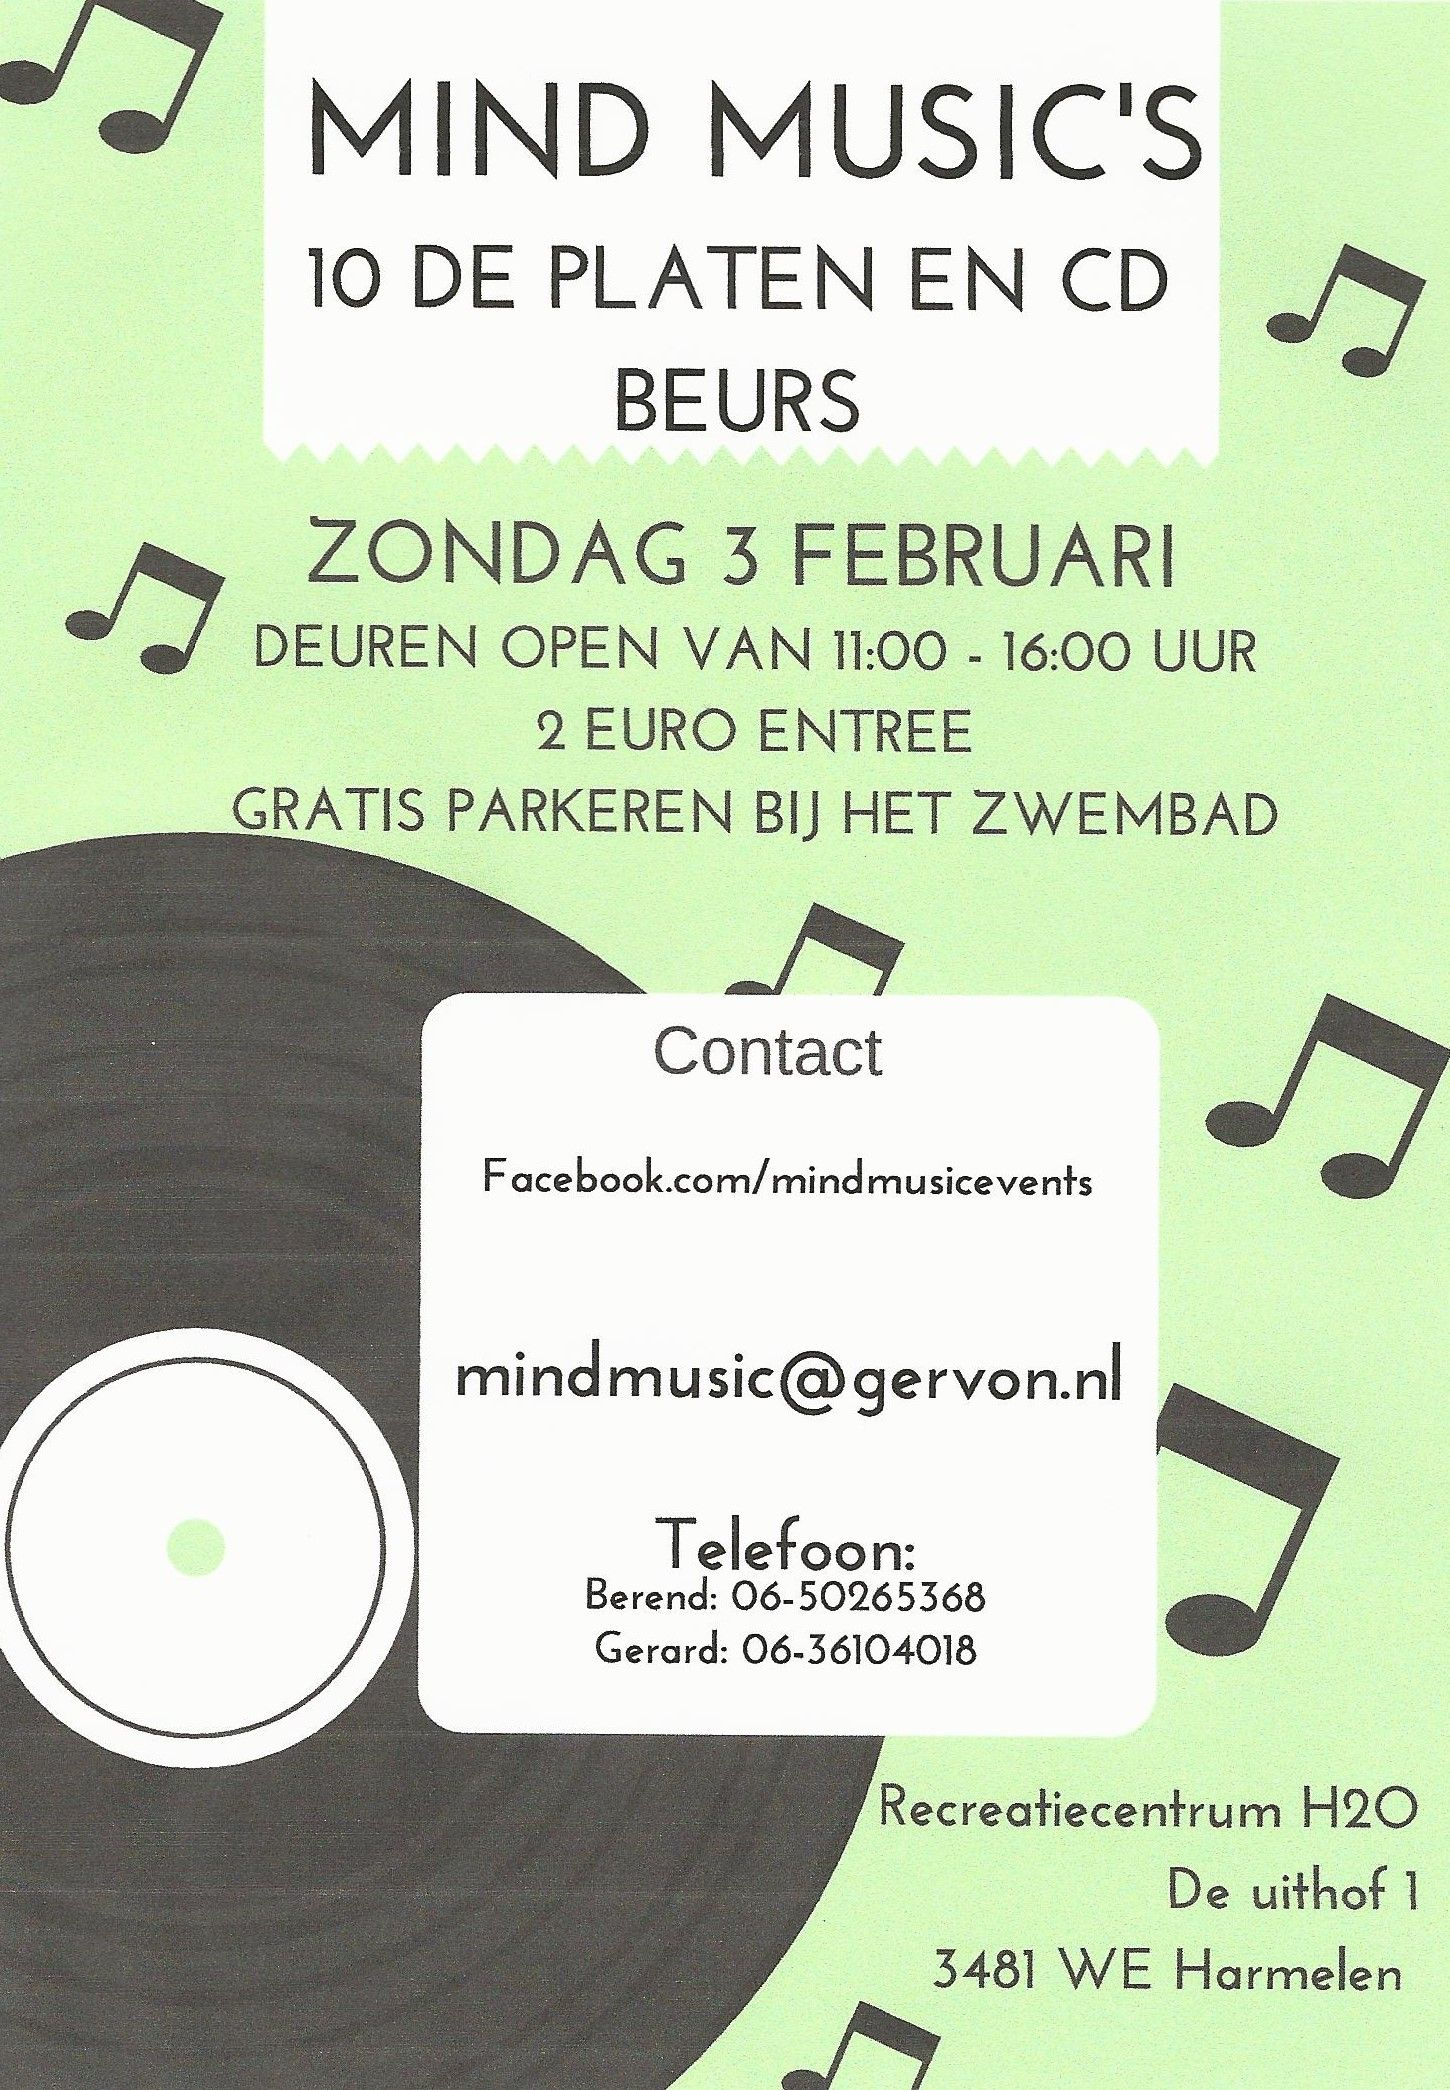 10de Platen- en CD Beurs Mind Music